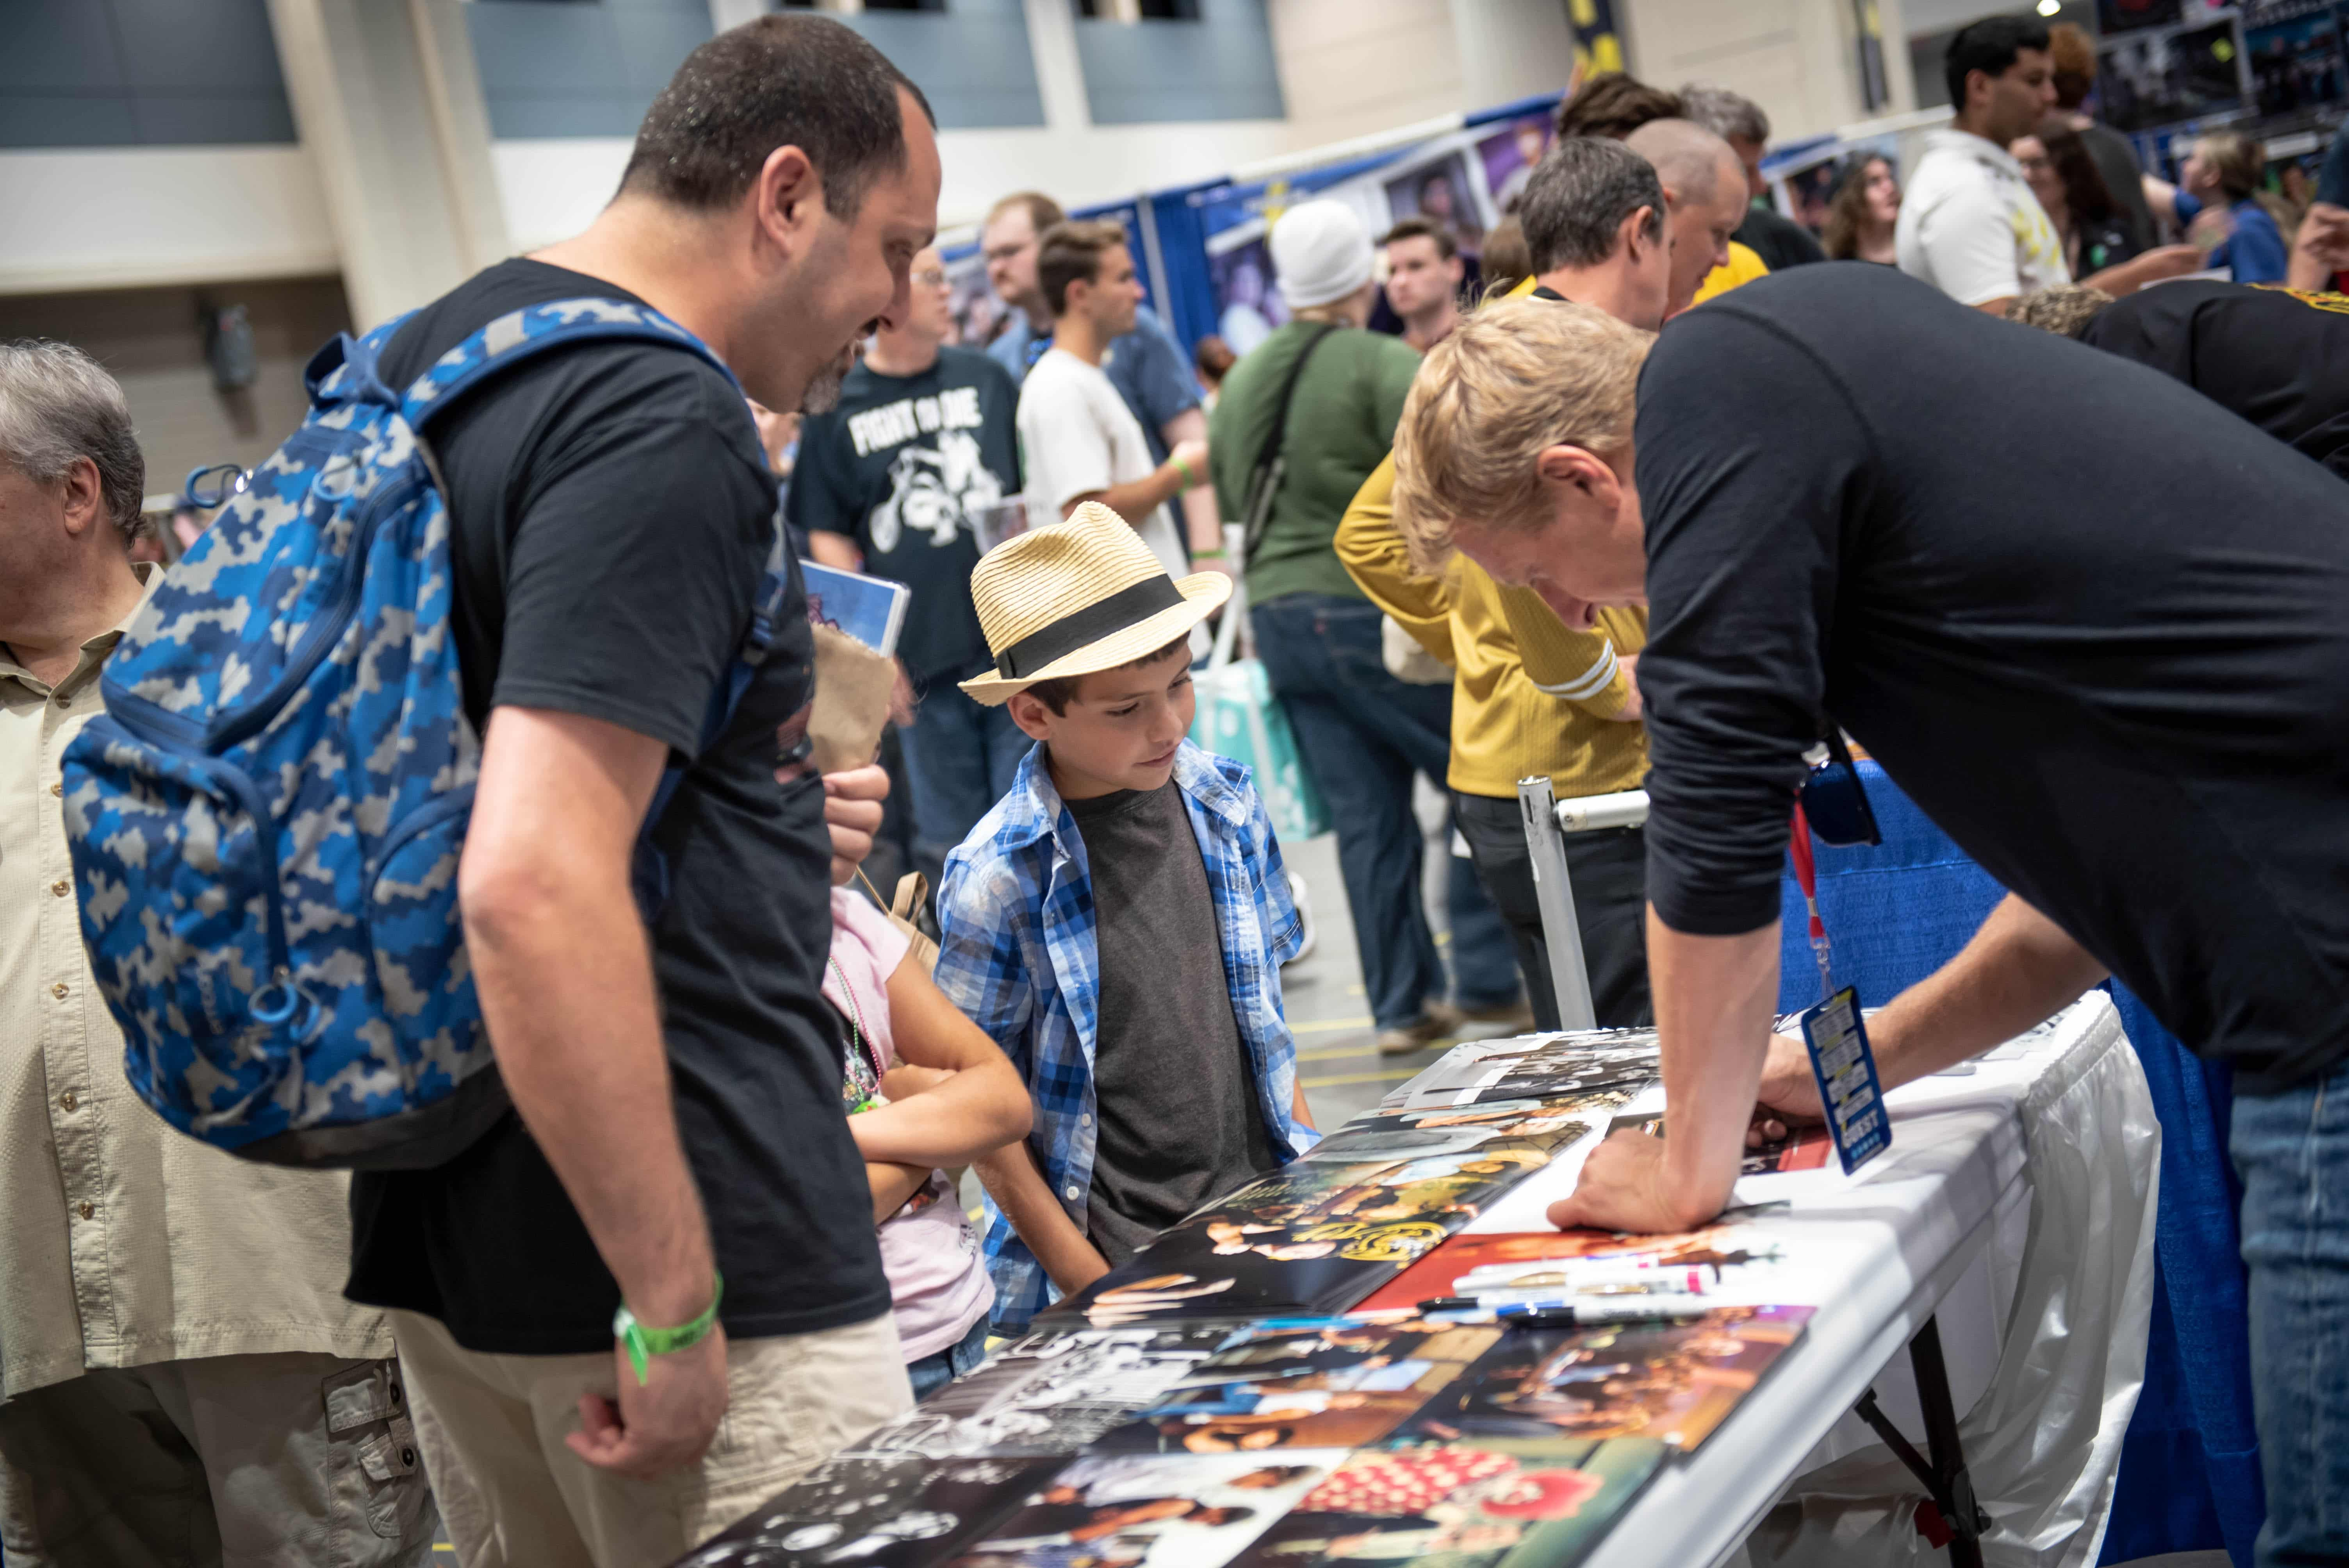 GalaxyCon Raleigh is July 25-28 at the Raleigh Convention Center